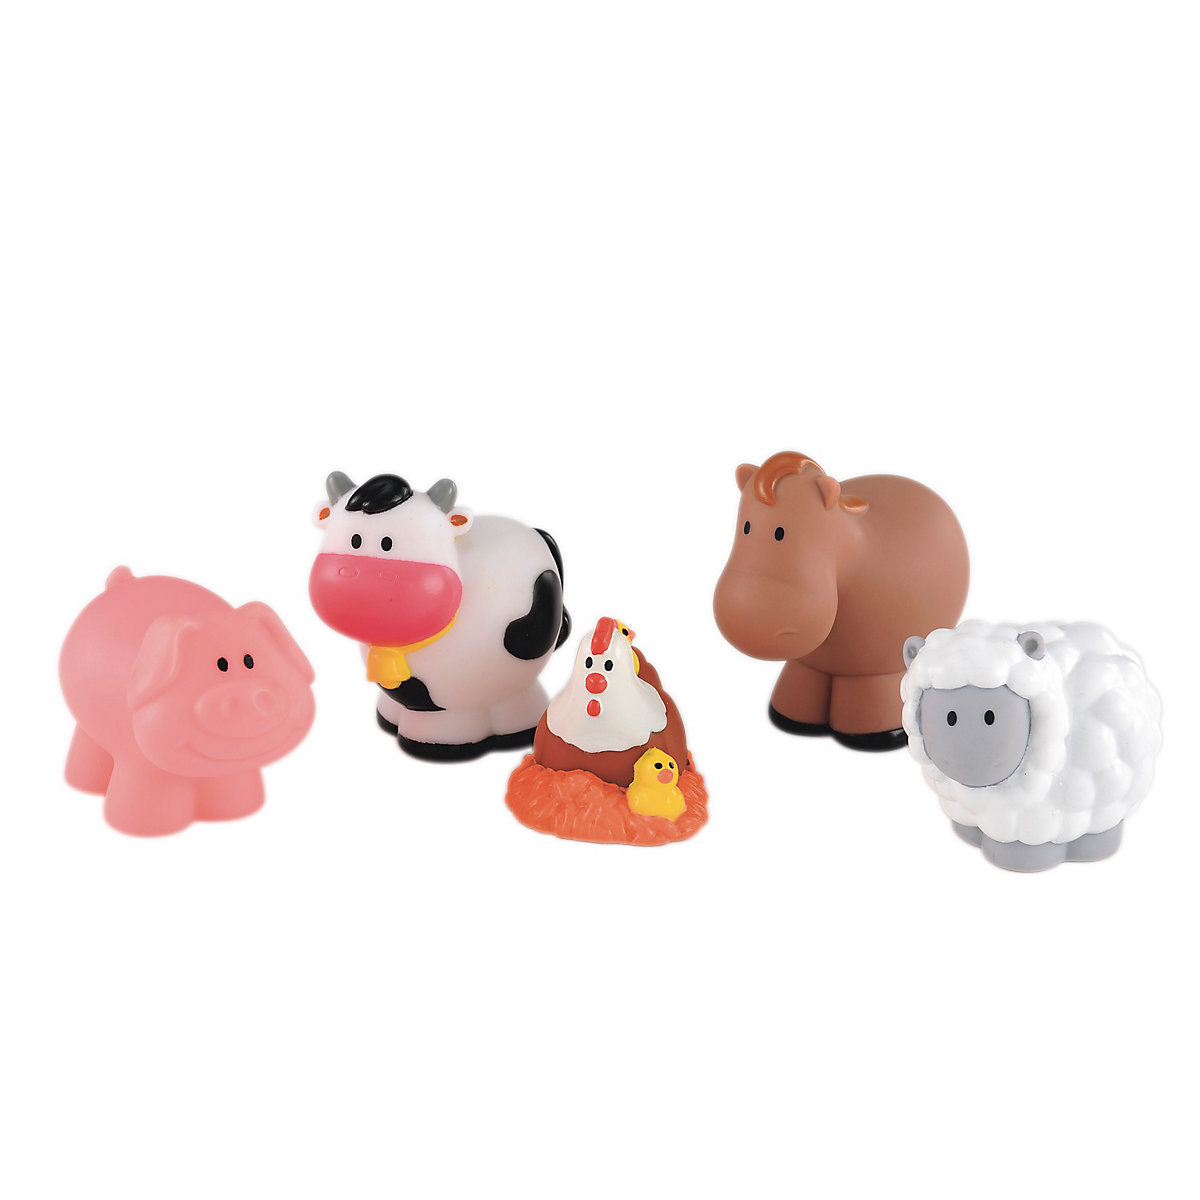 New ELC Boys and Girls Happyland Happy Farm Animals Toy From 18 months